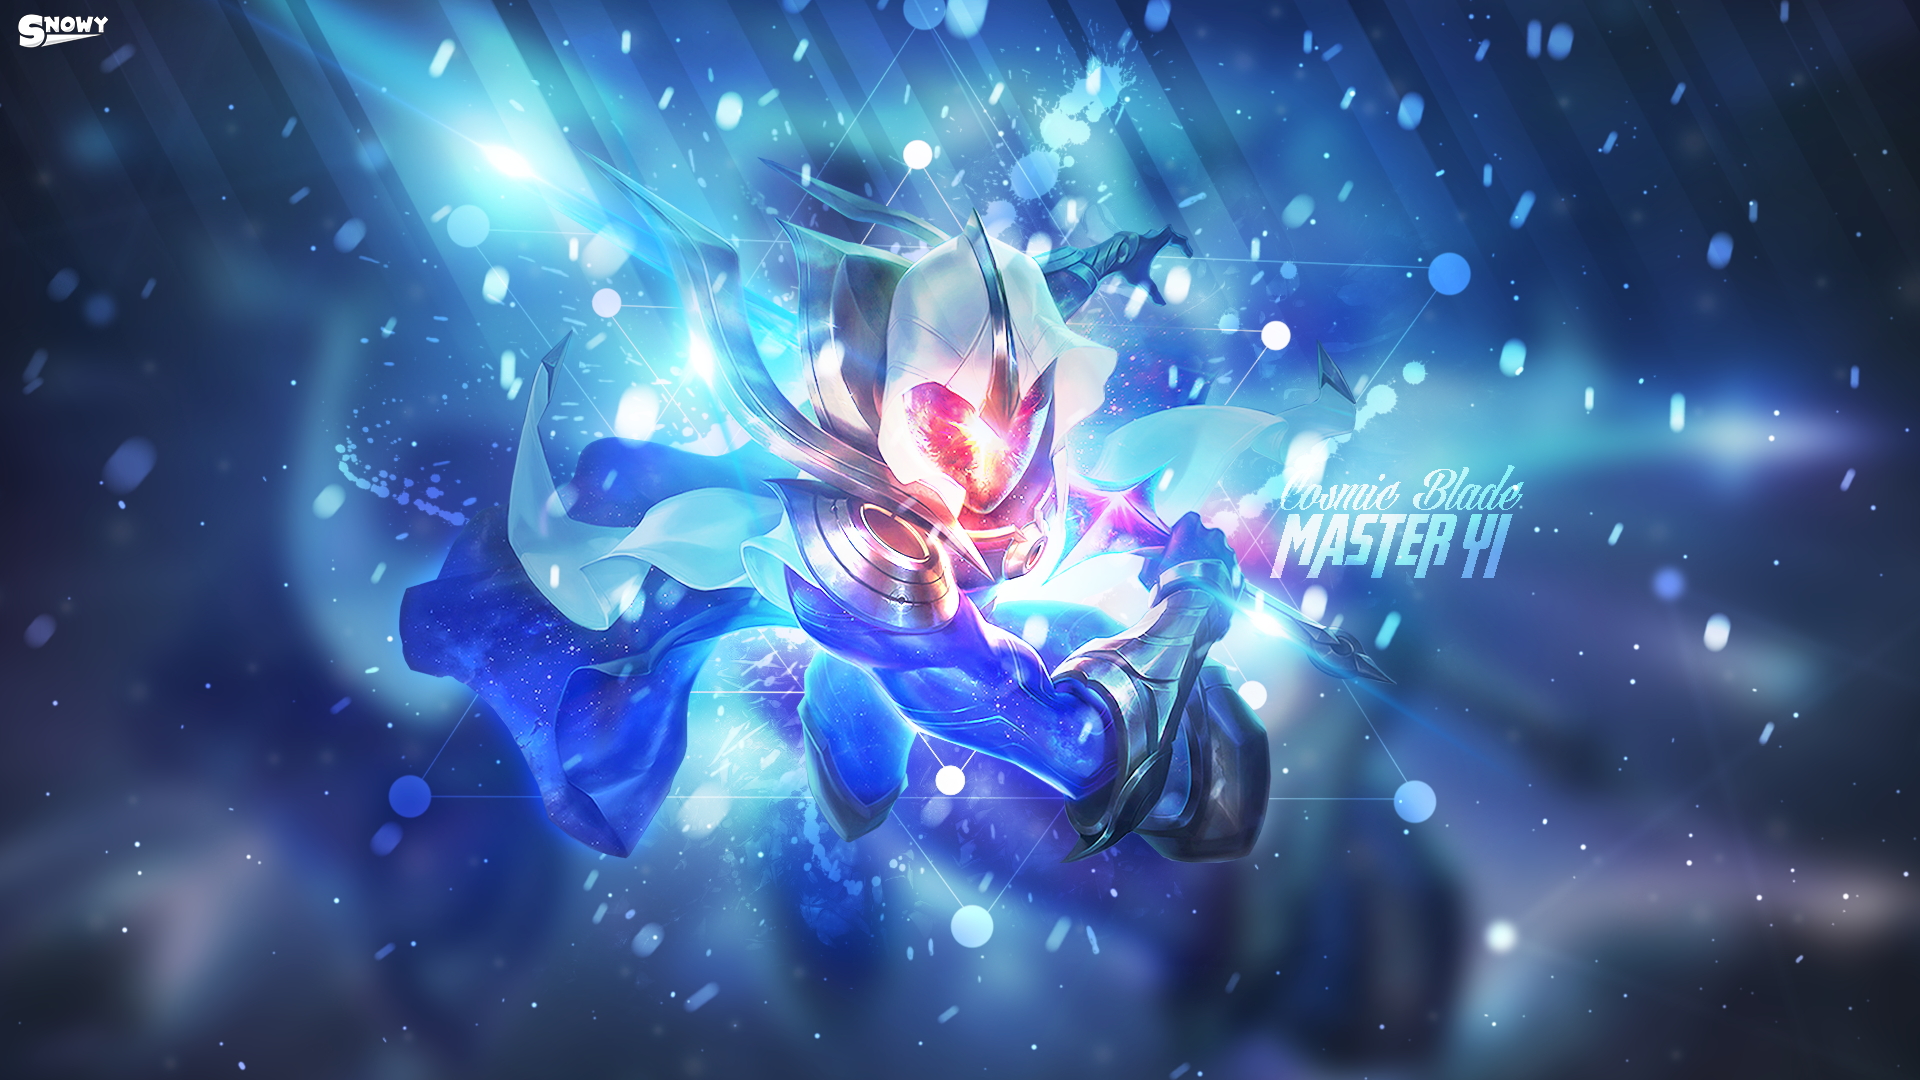 League Of Legends Cosmic Blade Master Yi By Massi001 On Deviantart